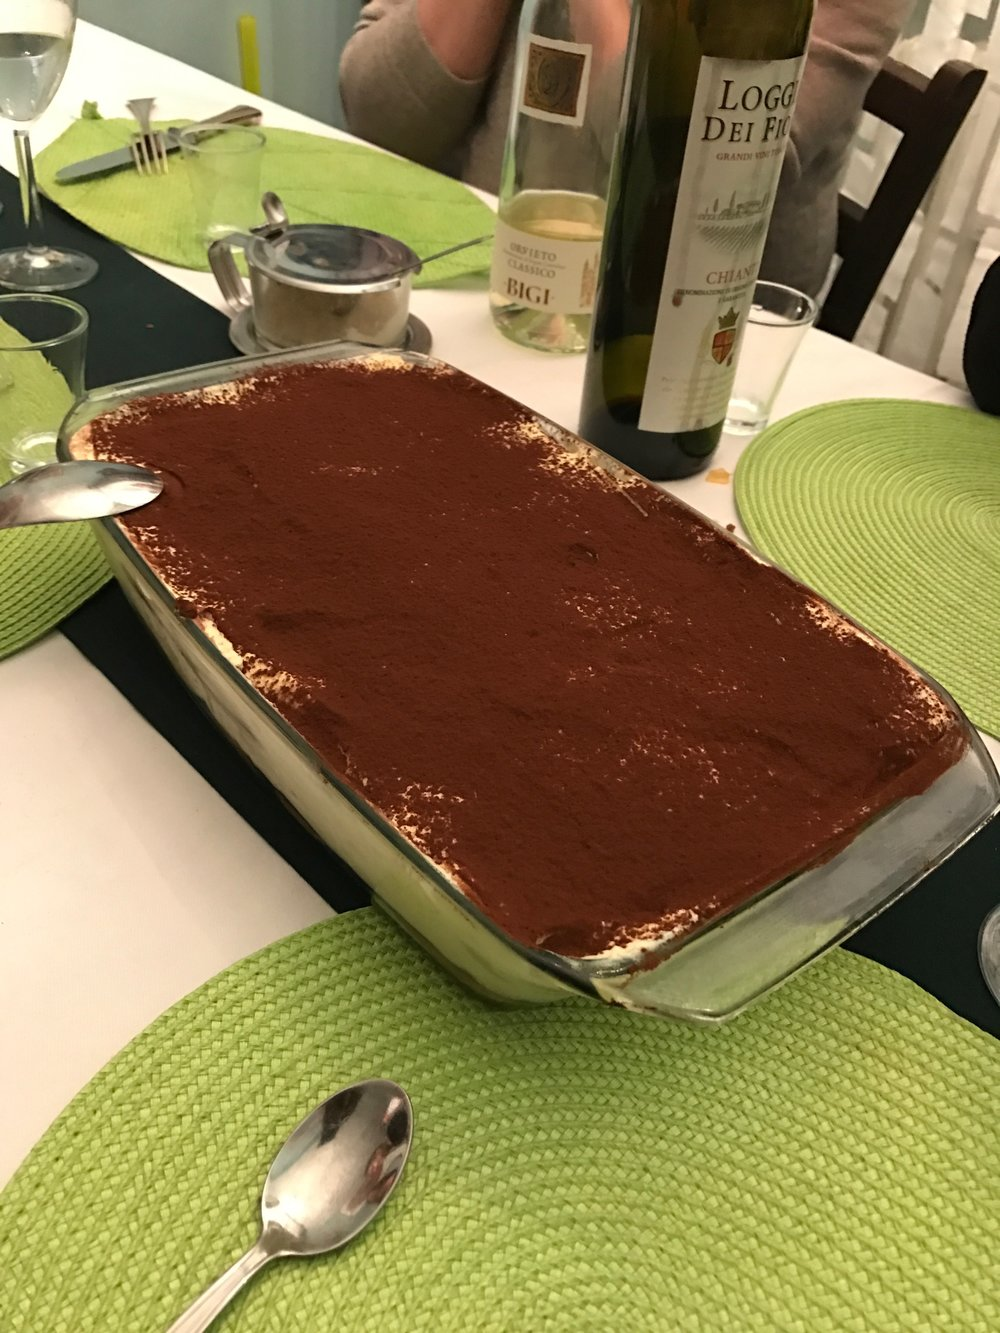 THE TIRAMISU MIGHT NOT HAVE LOOKED LIKE MUCH BUT IT WAS FANTASTIC